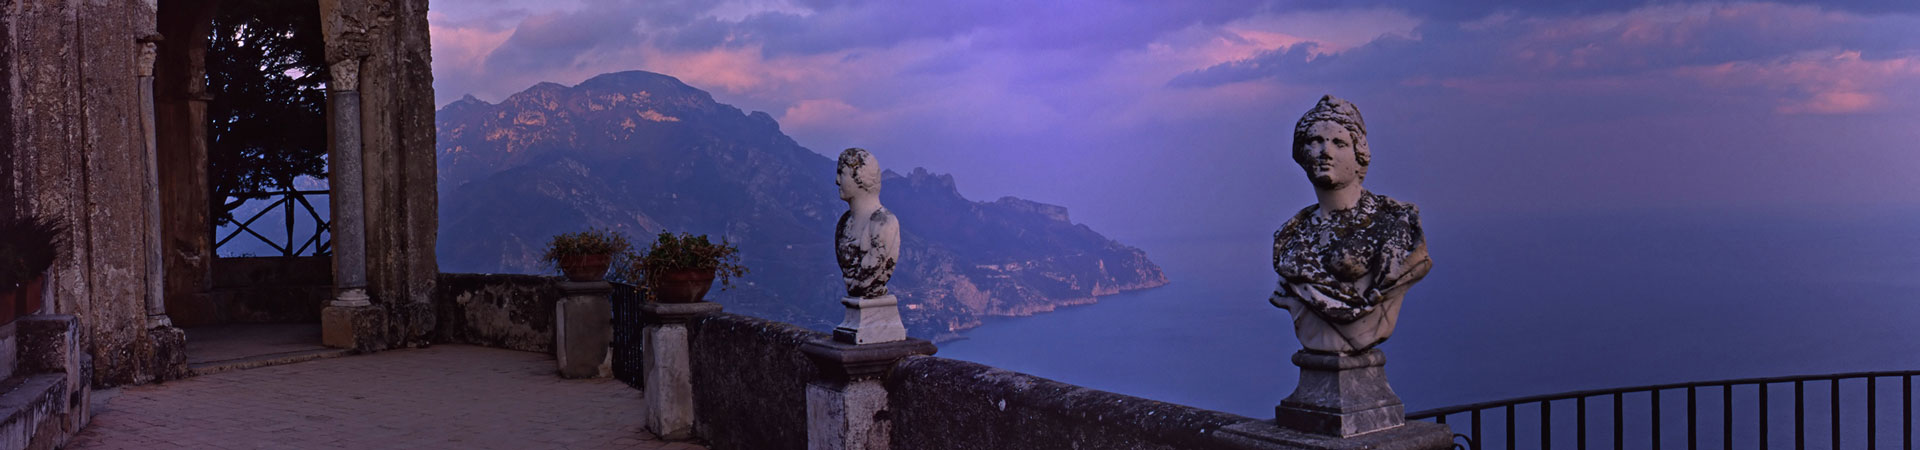 iStock_000025096402_Medium_Ravello_Costiera